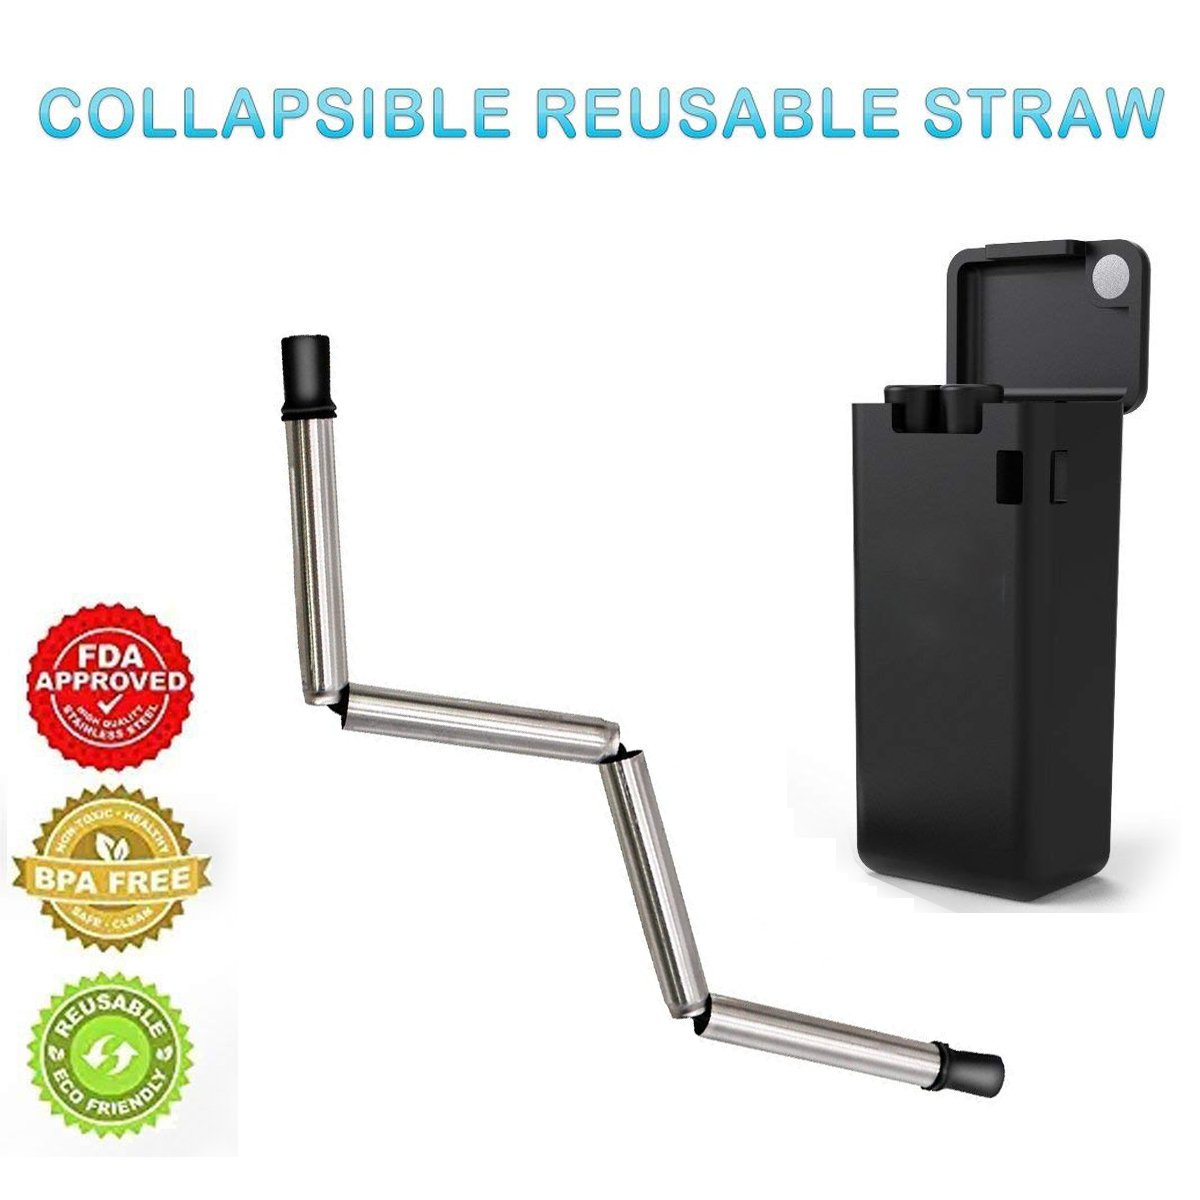 Collapsible Drinking Straw Stainless Steel, Zero Waste Medical Grade Food Grade Final Reusable Folding Drink Straw Travel Portable with Hard Case and Cleaning Brush